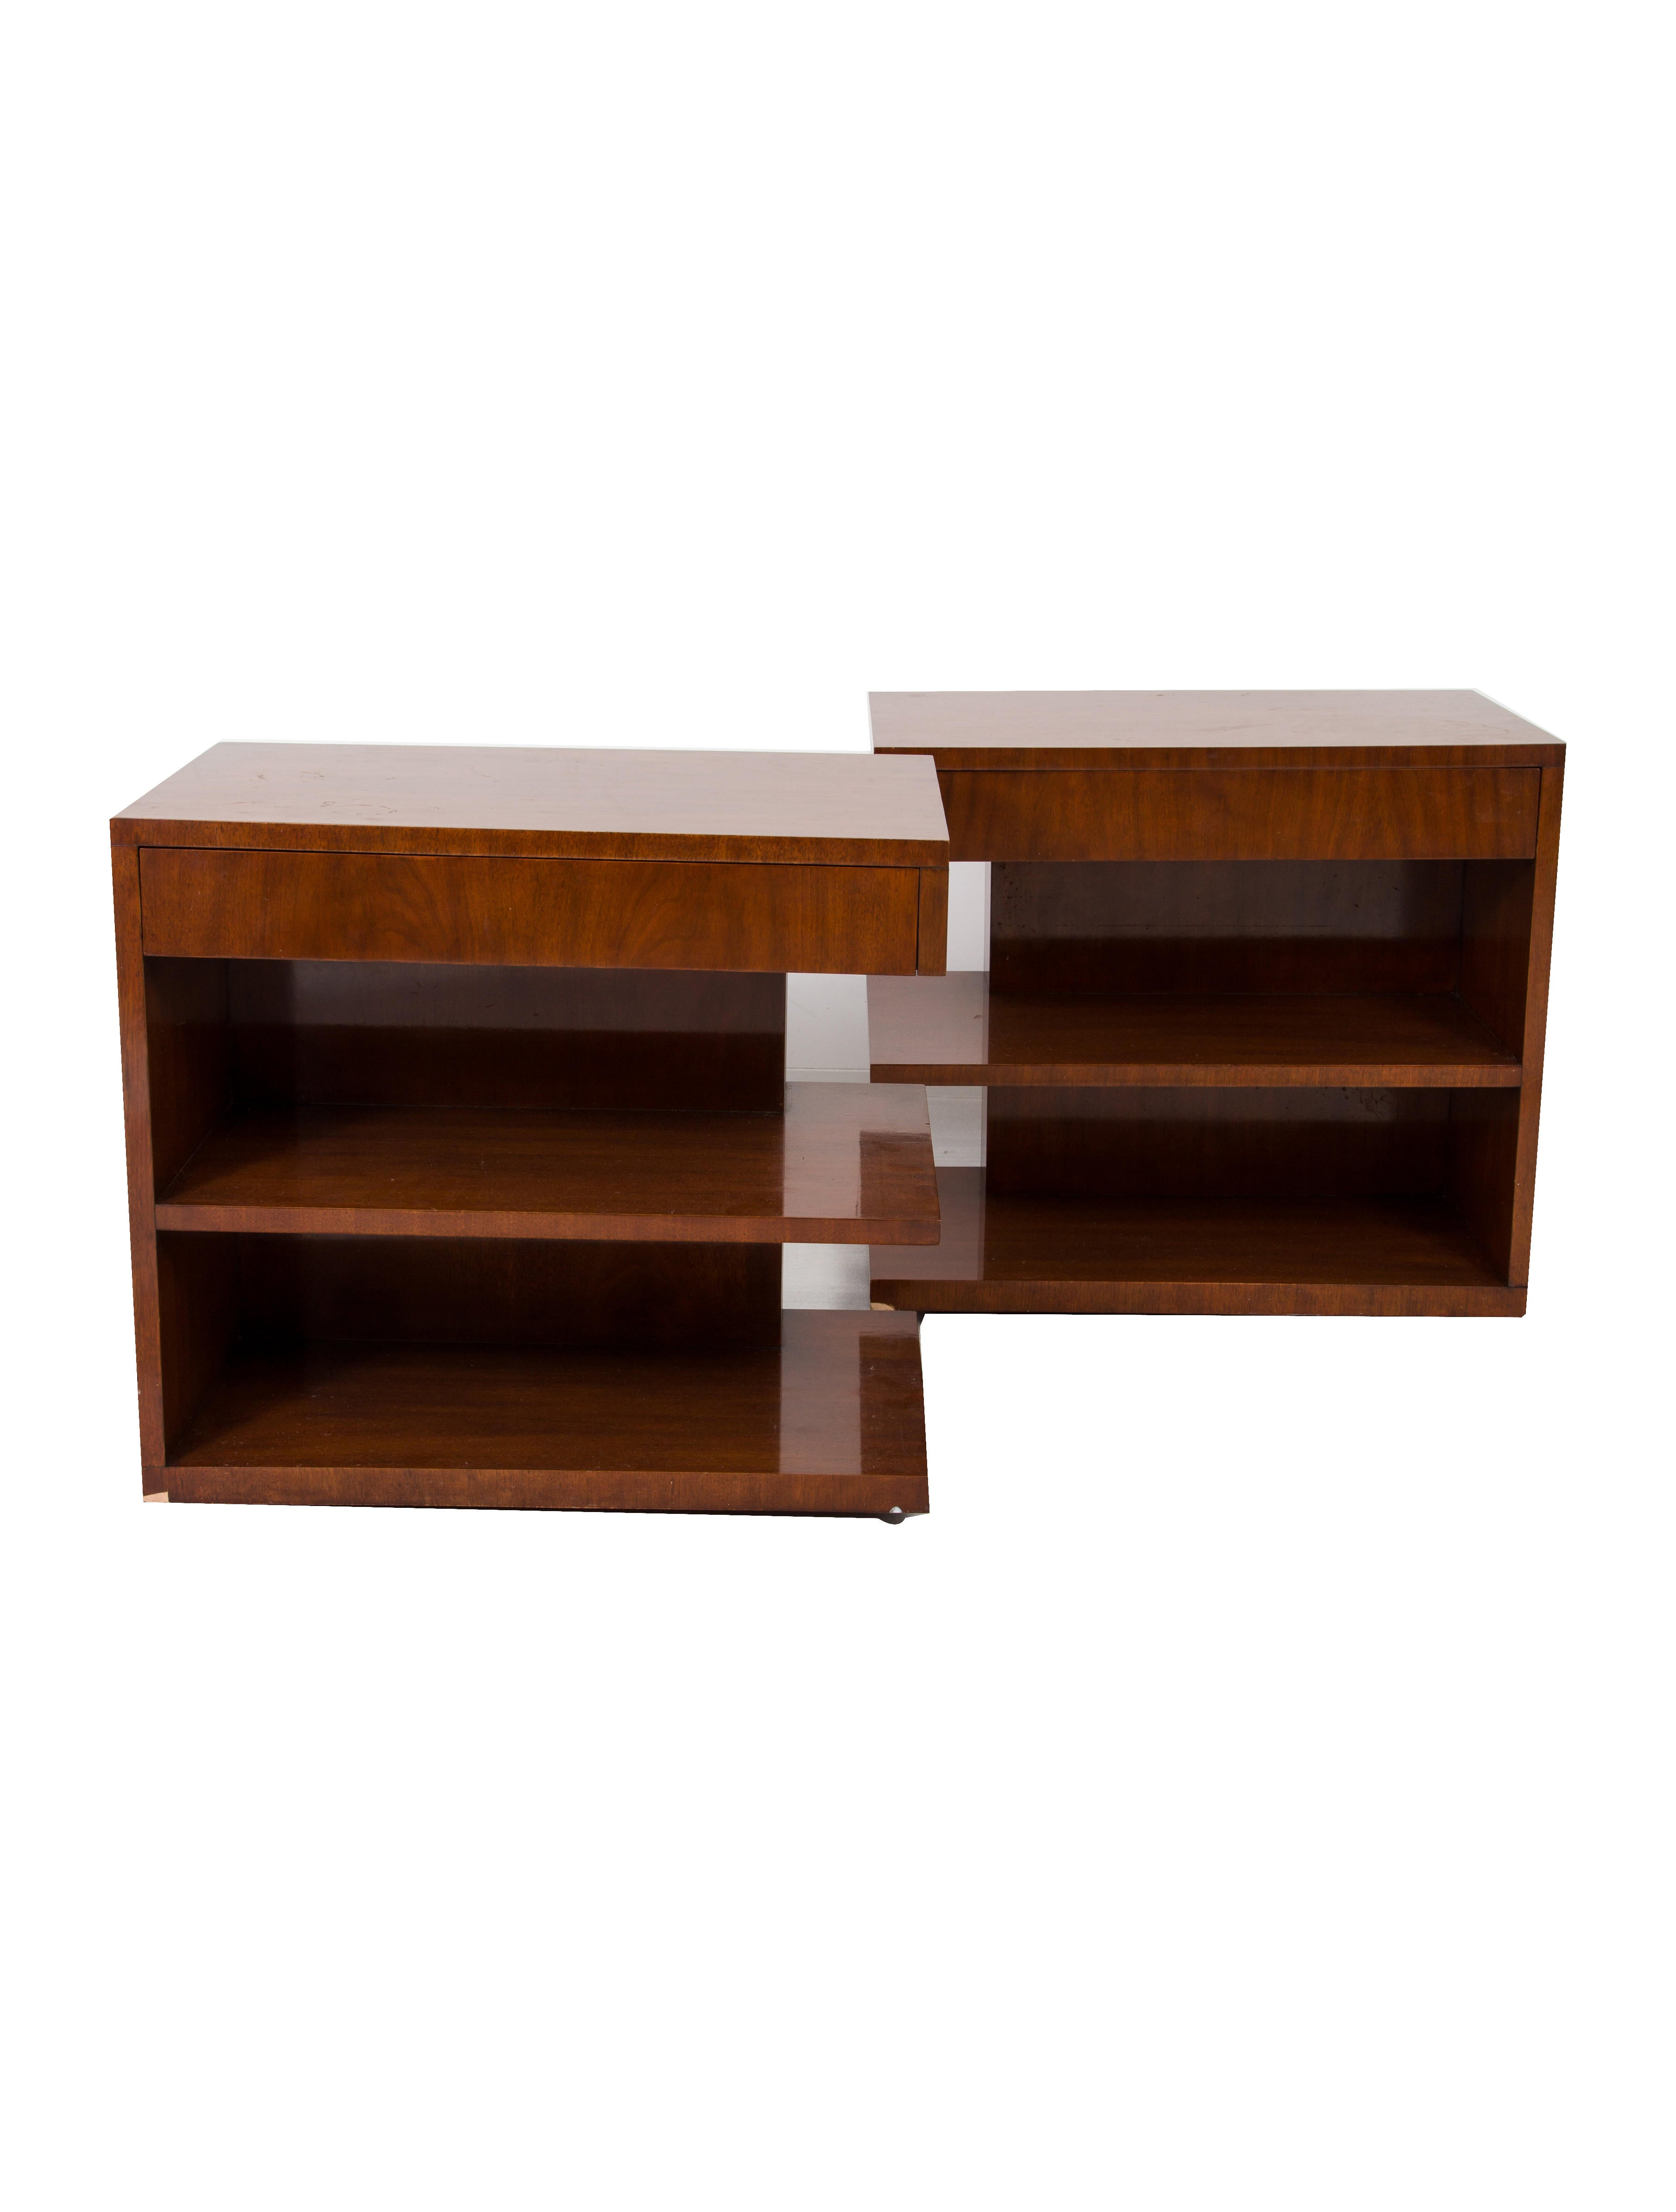 Ralph lauren modern hollywood night stands furniture for Ralph lauren office furniture